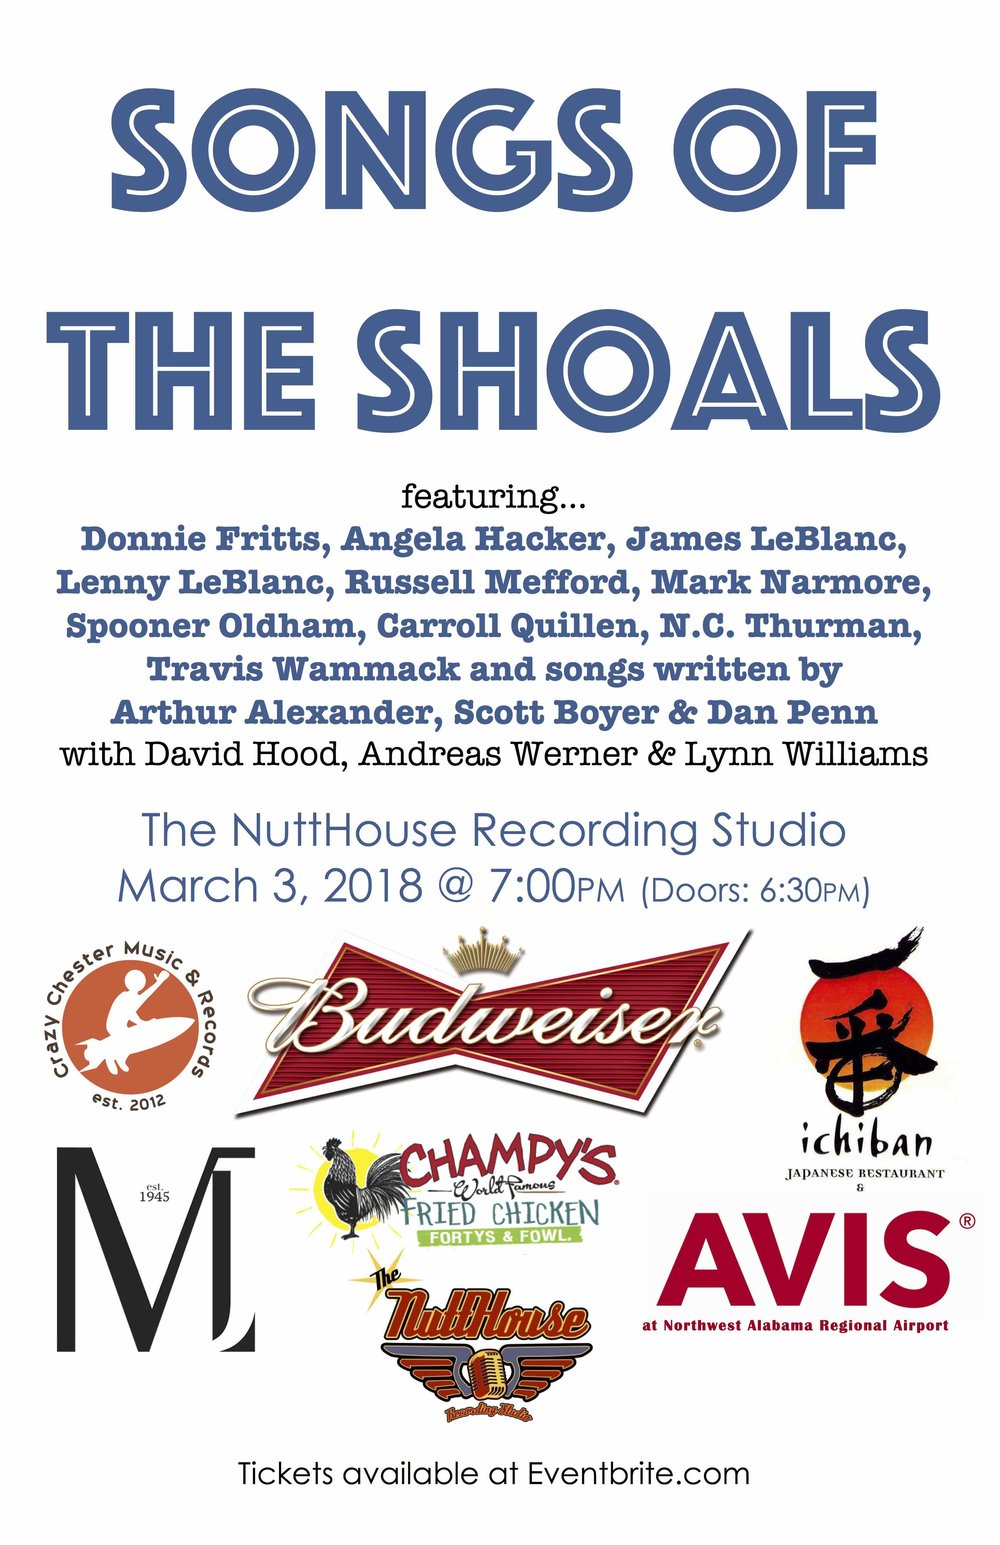 Songs Of The Shoals Poster copy 2.jpg